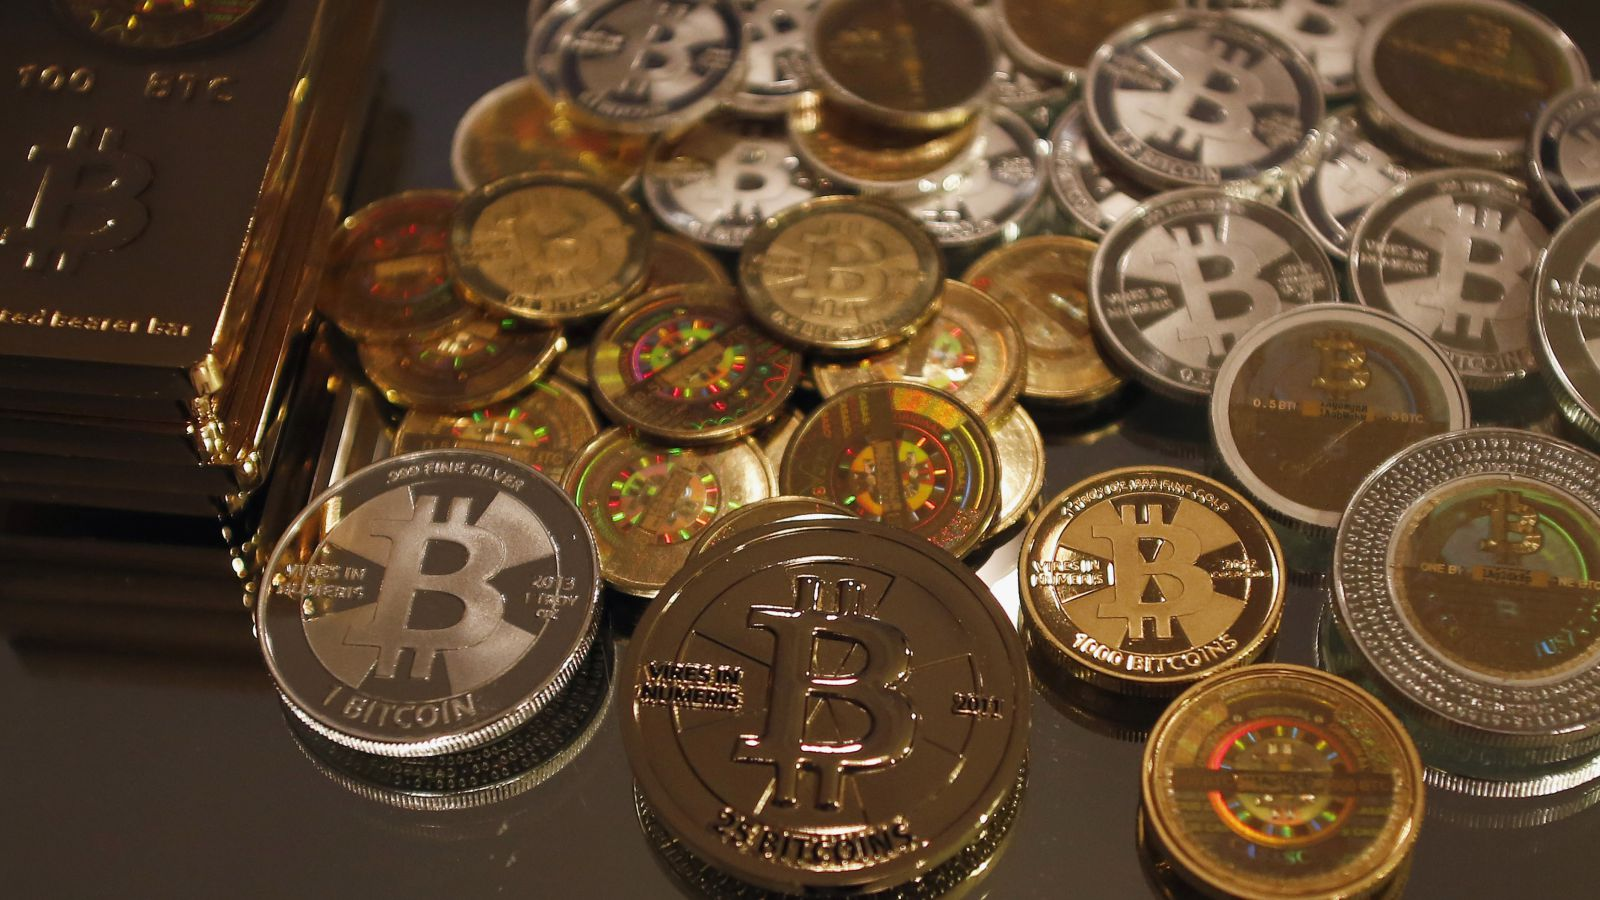 Bitcoin crime kidnapped indian businessman paid 200 bitcoin ransom some of bitcoin enthusiast mike caldwells coins are pictured at his office in sandy utah stopboris Image collections